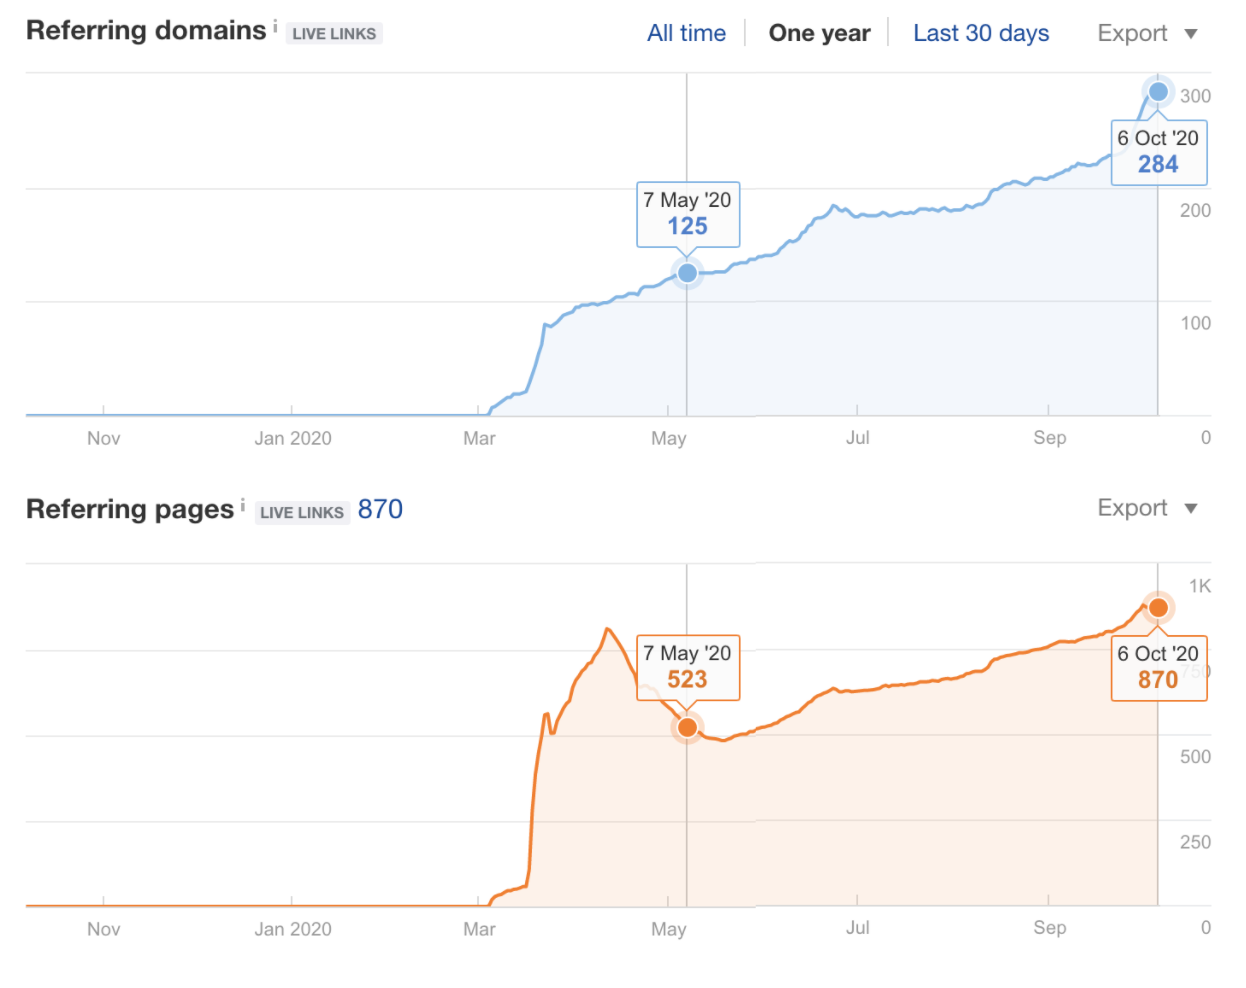 Referring domains & Backlinks from 05/07/2020 to 10/06/2020